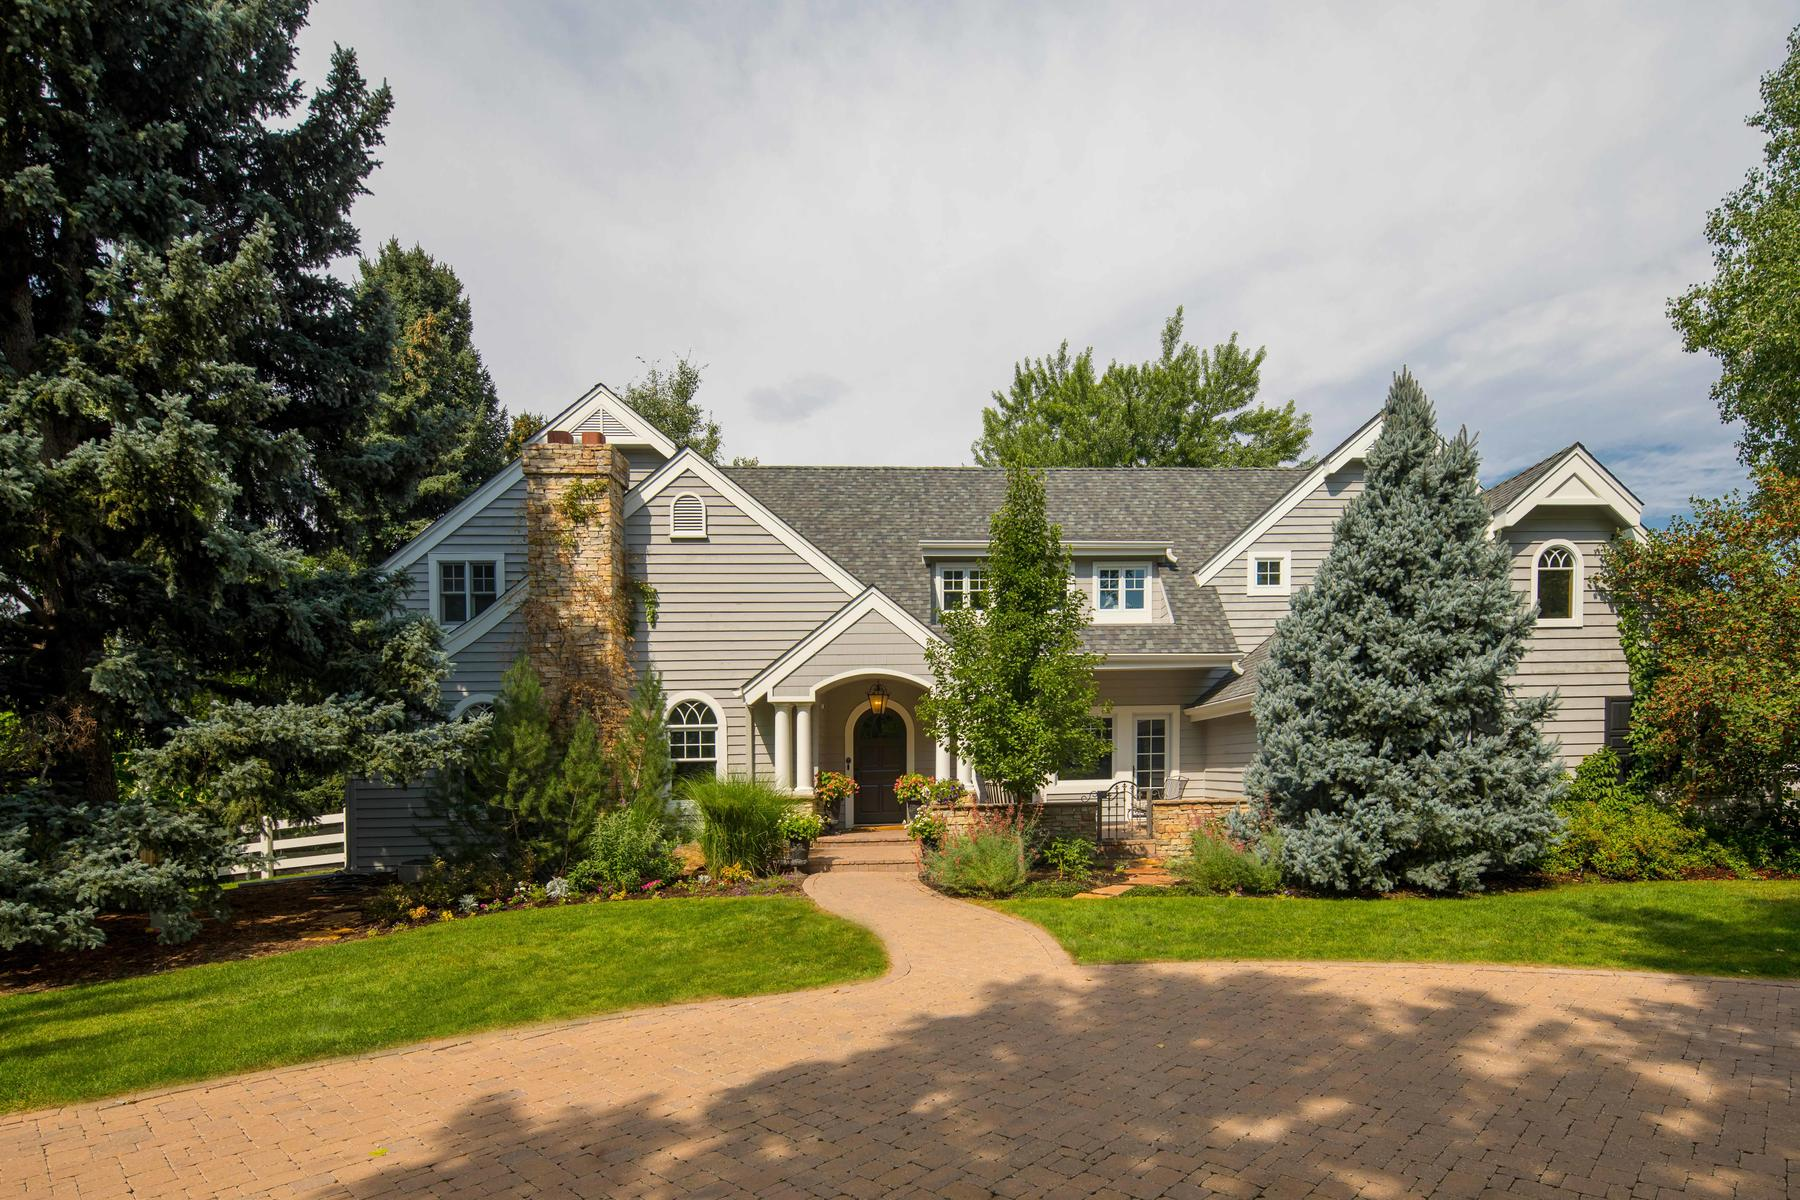 Property for Active at Reminiscent of coastal New England architecture! 4775 S Ogden St Cherry Hills Village, Colorado 80113 United States